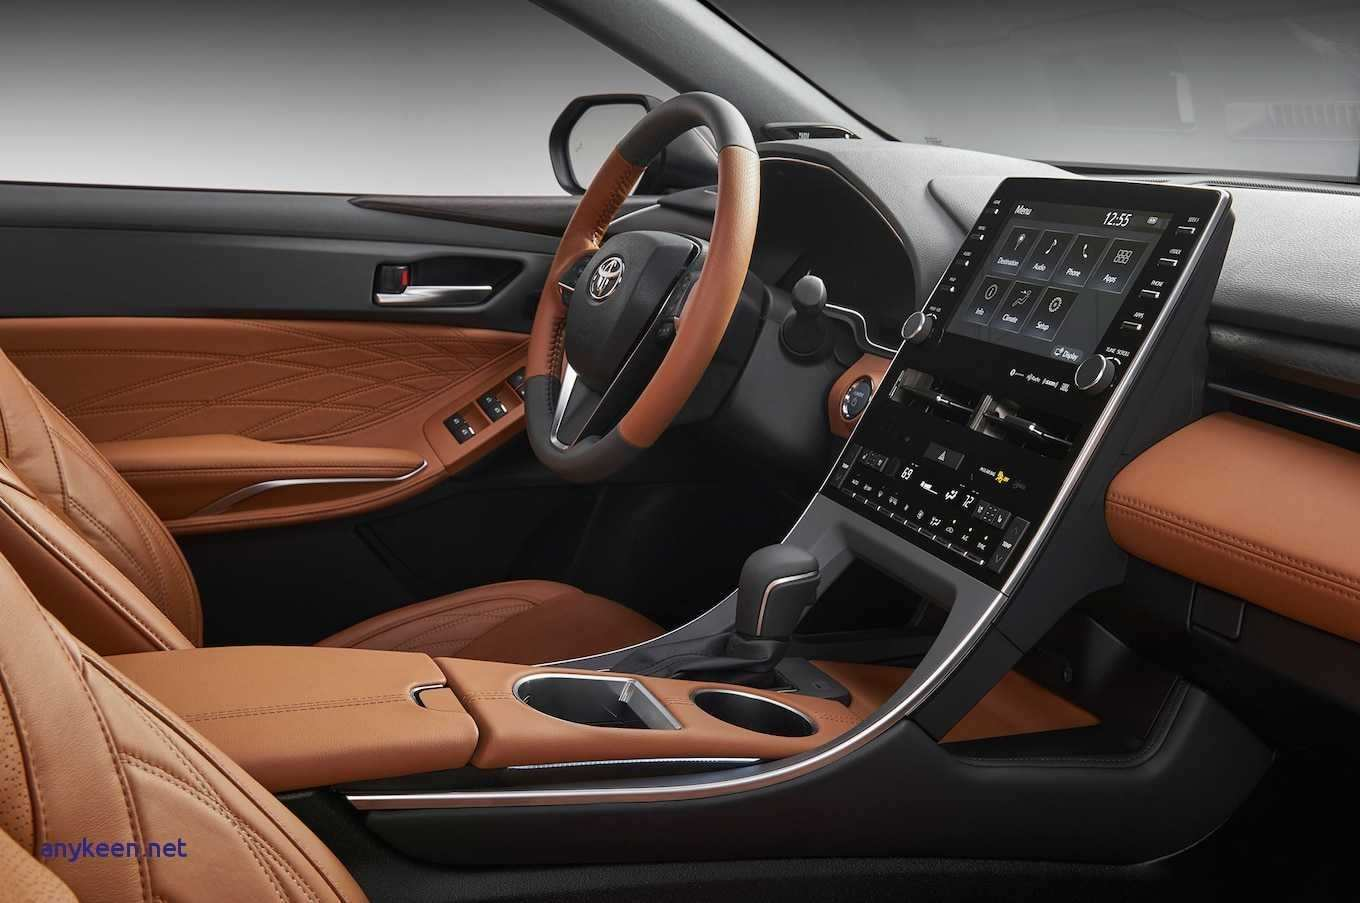 31 All New New Toyota Avalon 2019 Review Exterior And Interior Review Photos by New Toyota Avalon 2019 Review Exterior And Interior Review